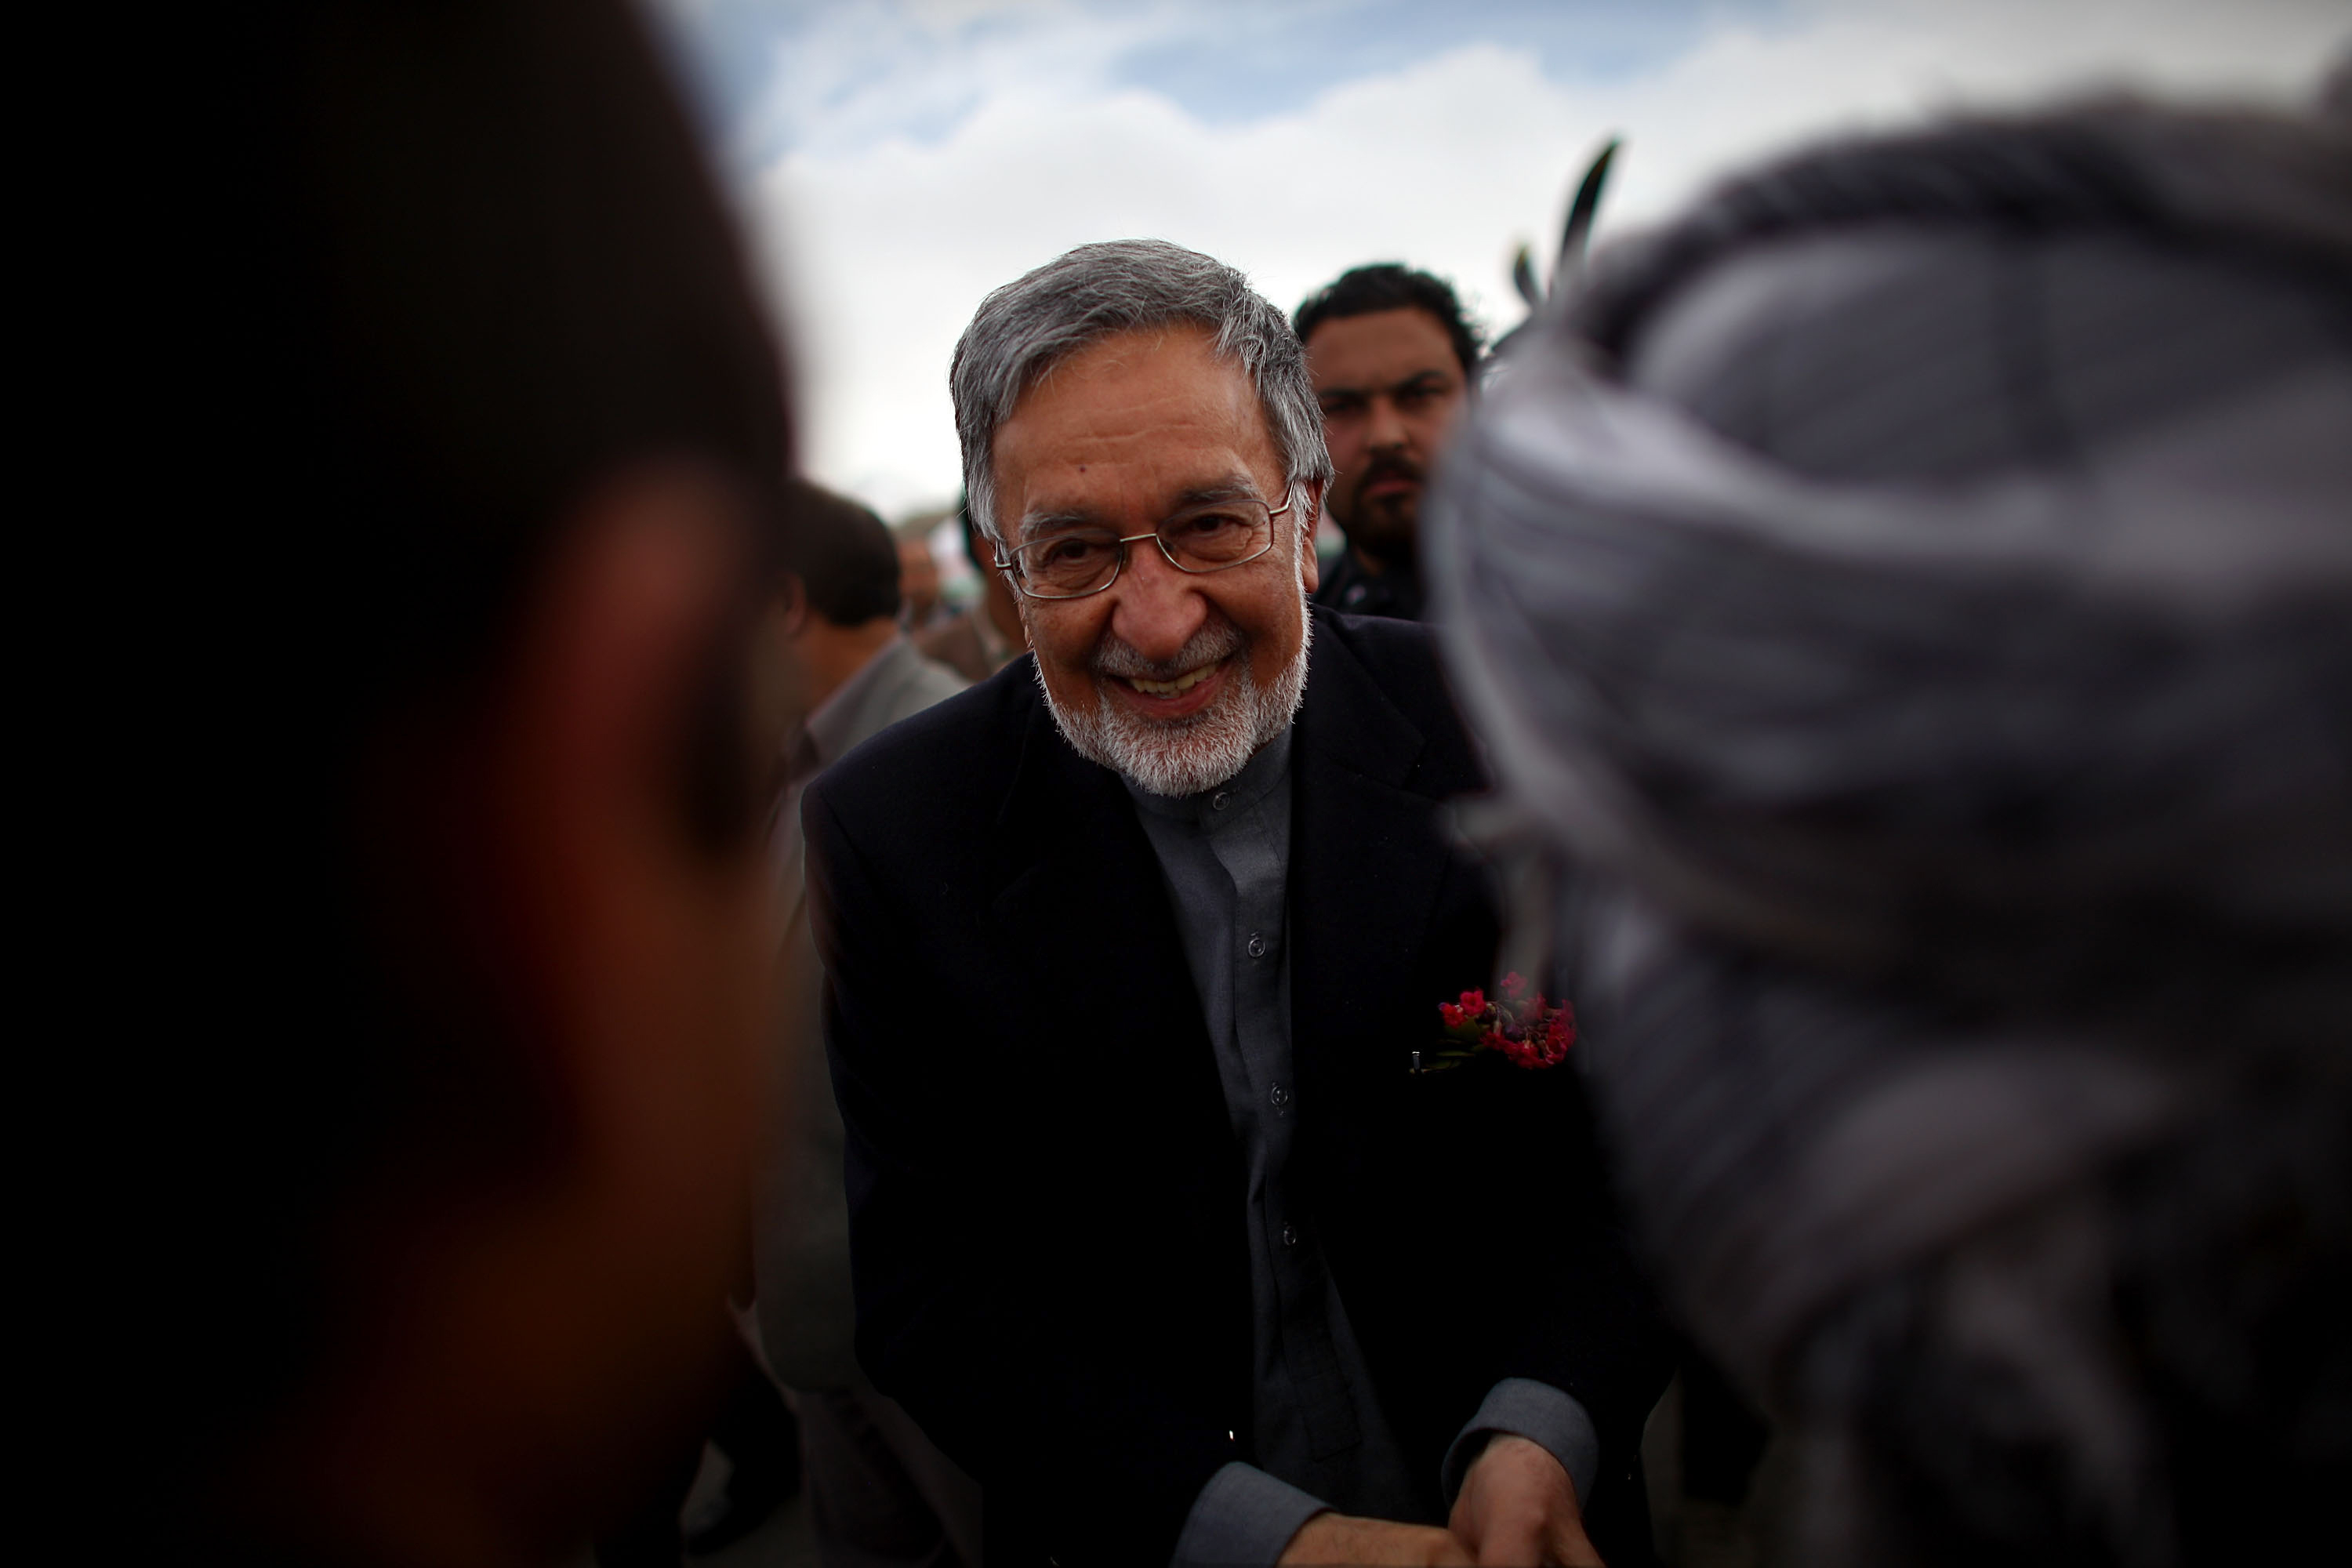 Presidential candidate Zalmay Rassoul shakes hands and greats well-wishers at the Bamiyan airport before a campaign rally. He has served in several top posts, including foreign minister, national security adviser and minister of civil aviation.